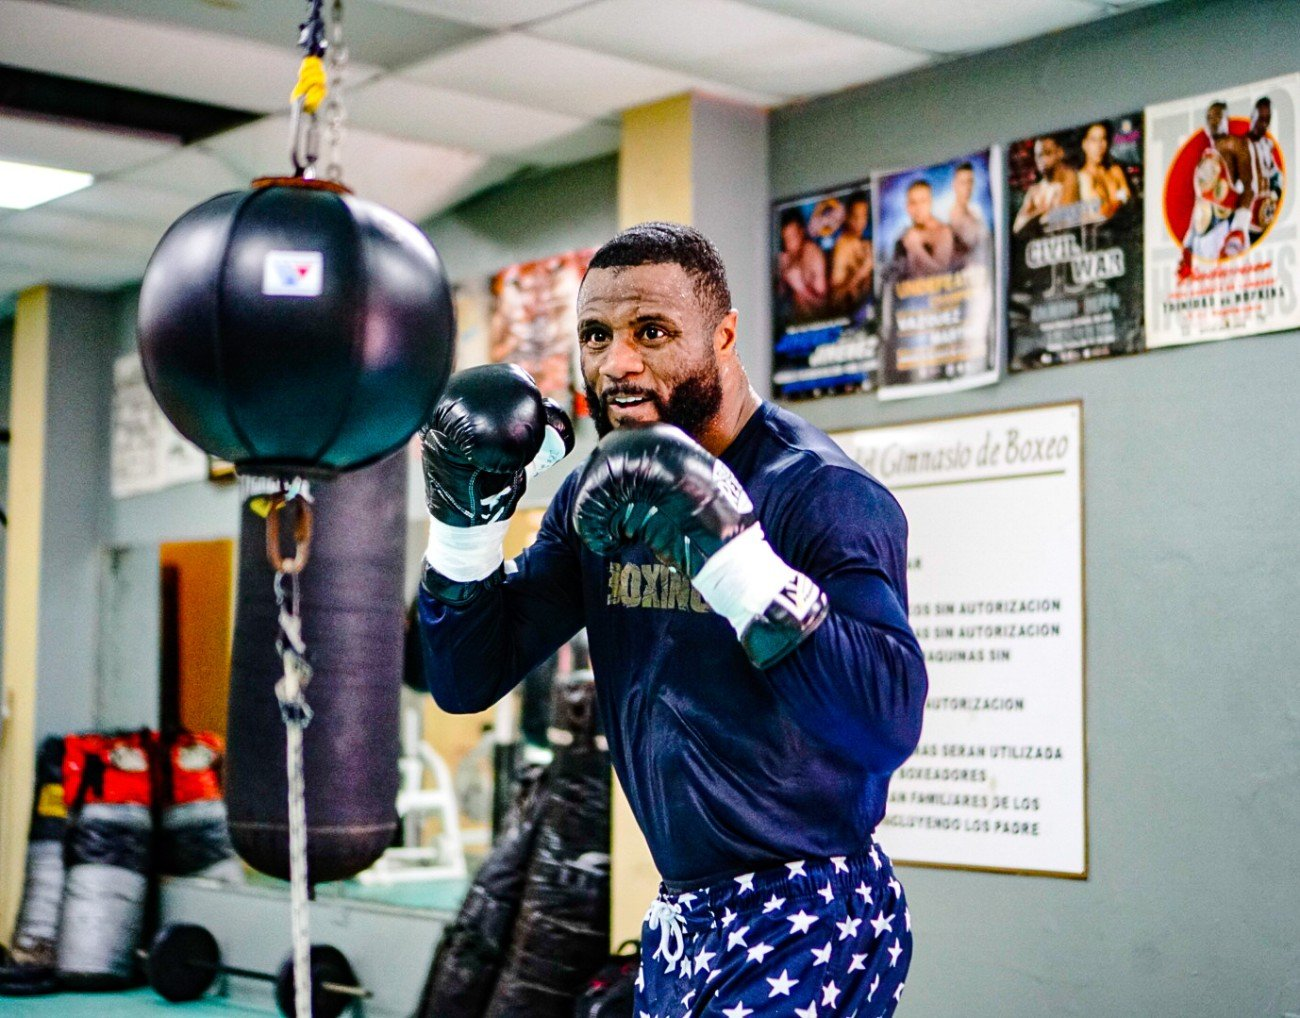 Badou Jack - As Jean Pascal prepares to defend his WBA Light Heavyweight Title, the two-time world champion shared an update from his training camp in Puerto Rico as he prepares to take on two-division champion Badou Jack Saturday, December 28 live on SHOWTIME from the award-winning State Farm Arena in Atlanta in a Premier Boxing Champions event.